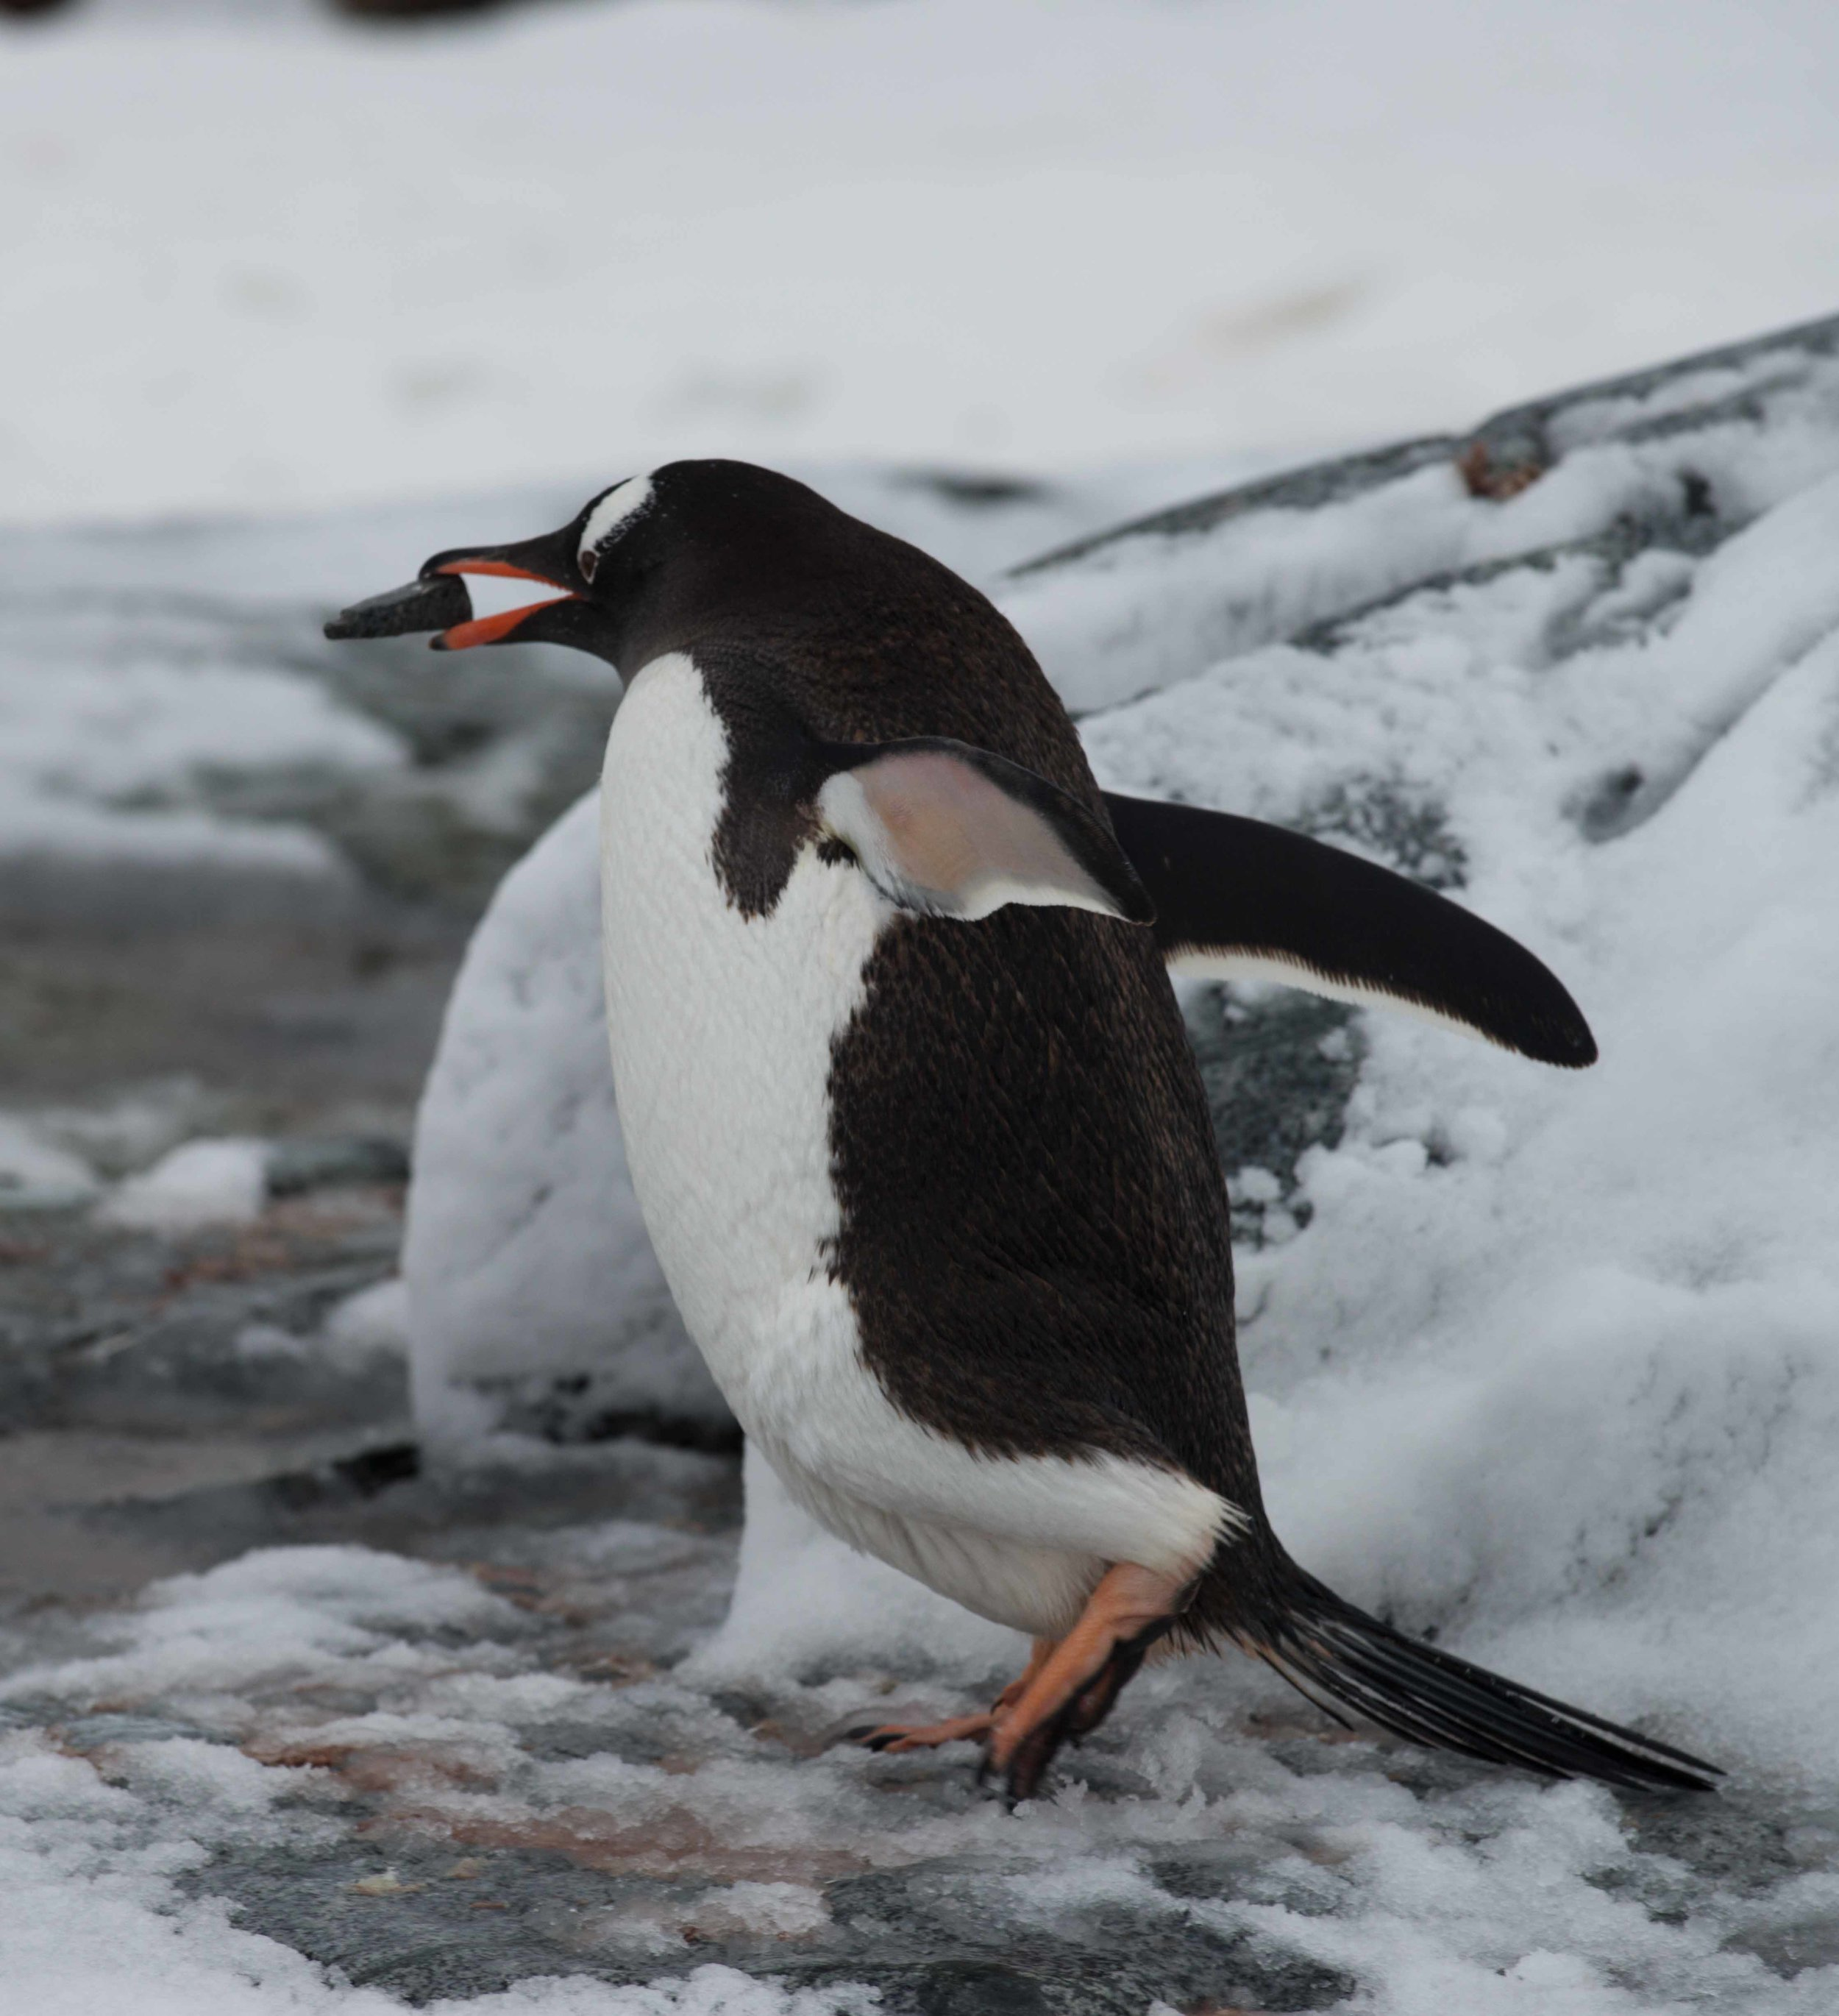 Gentoo penguin carries stones to his nest. Penguins breed in large colonies and form monogamous pairs for a breeding season, sharing incubation duties.